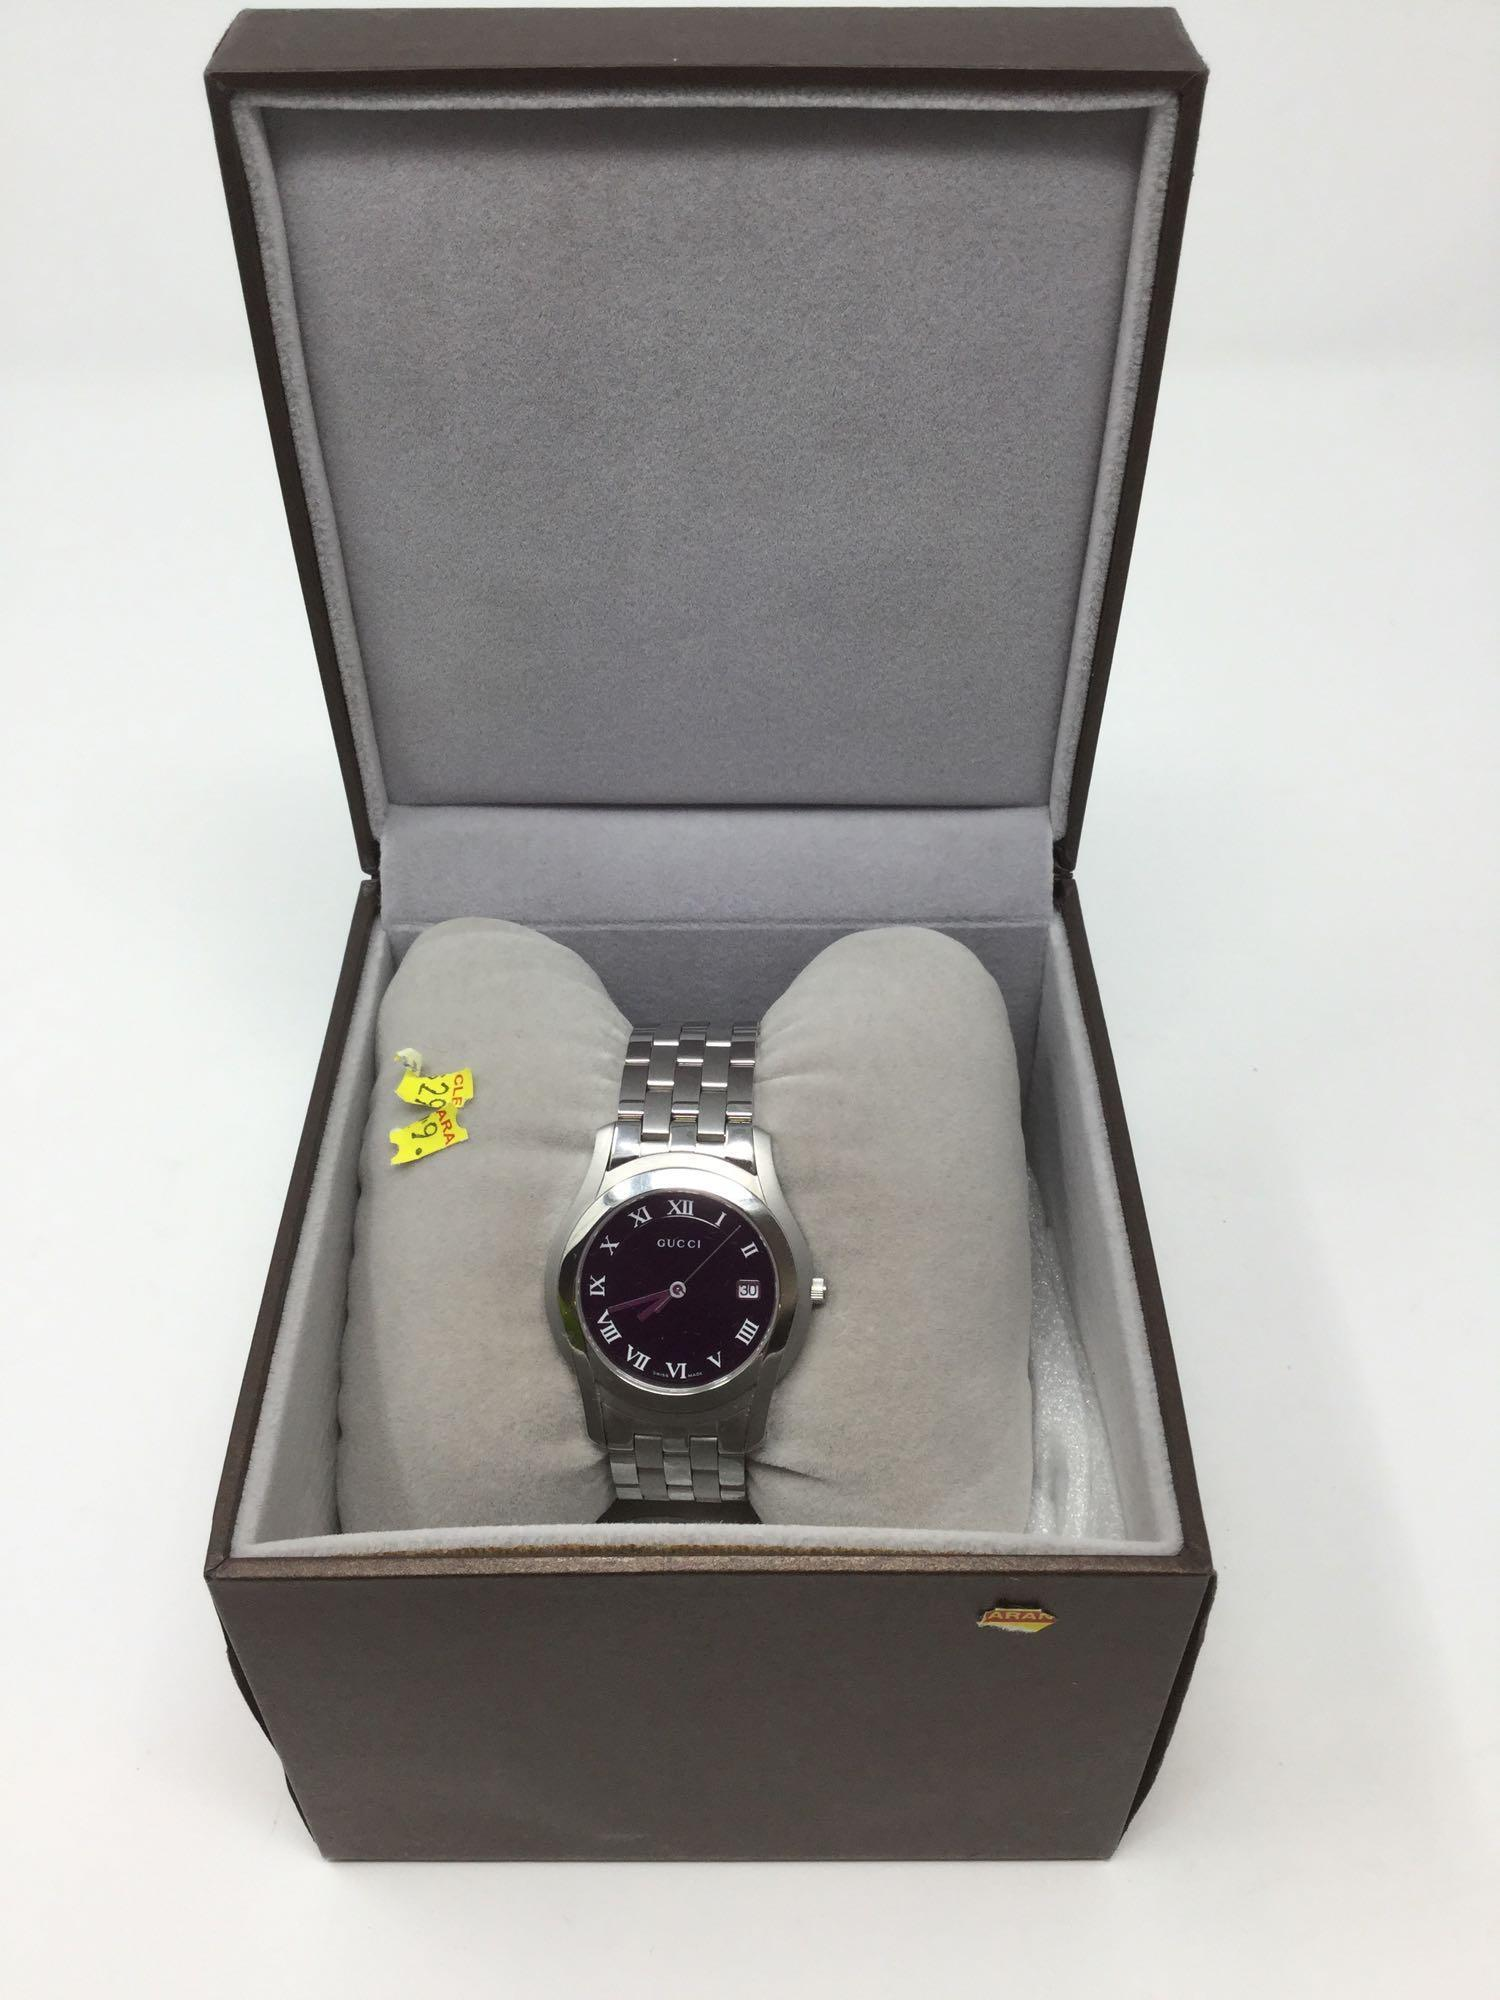 Lot 2 - Gucci Watch - woman's Silver band and Black Face